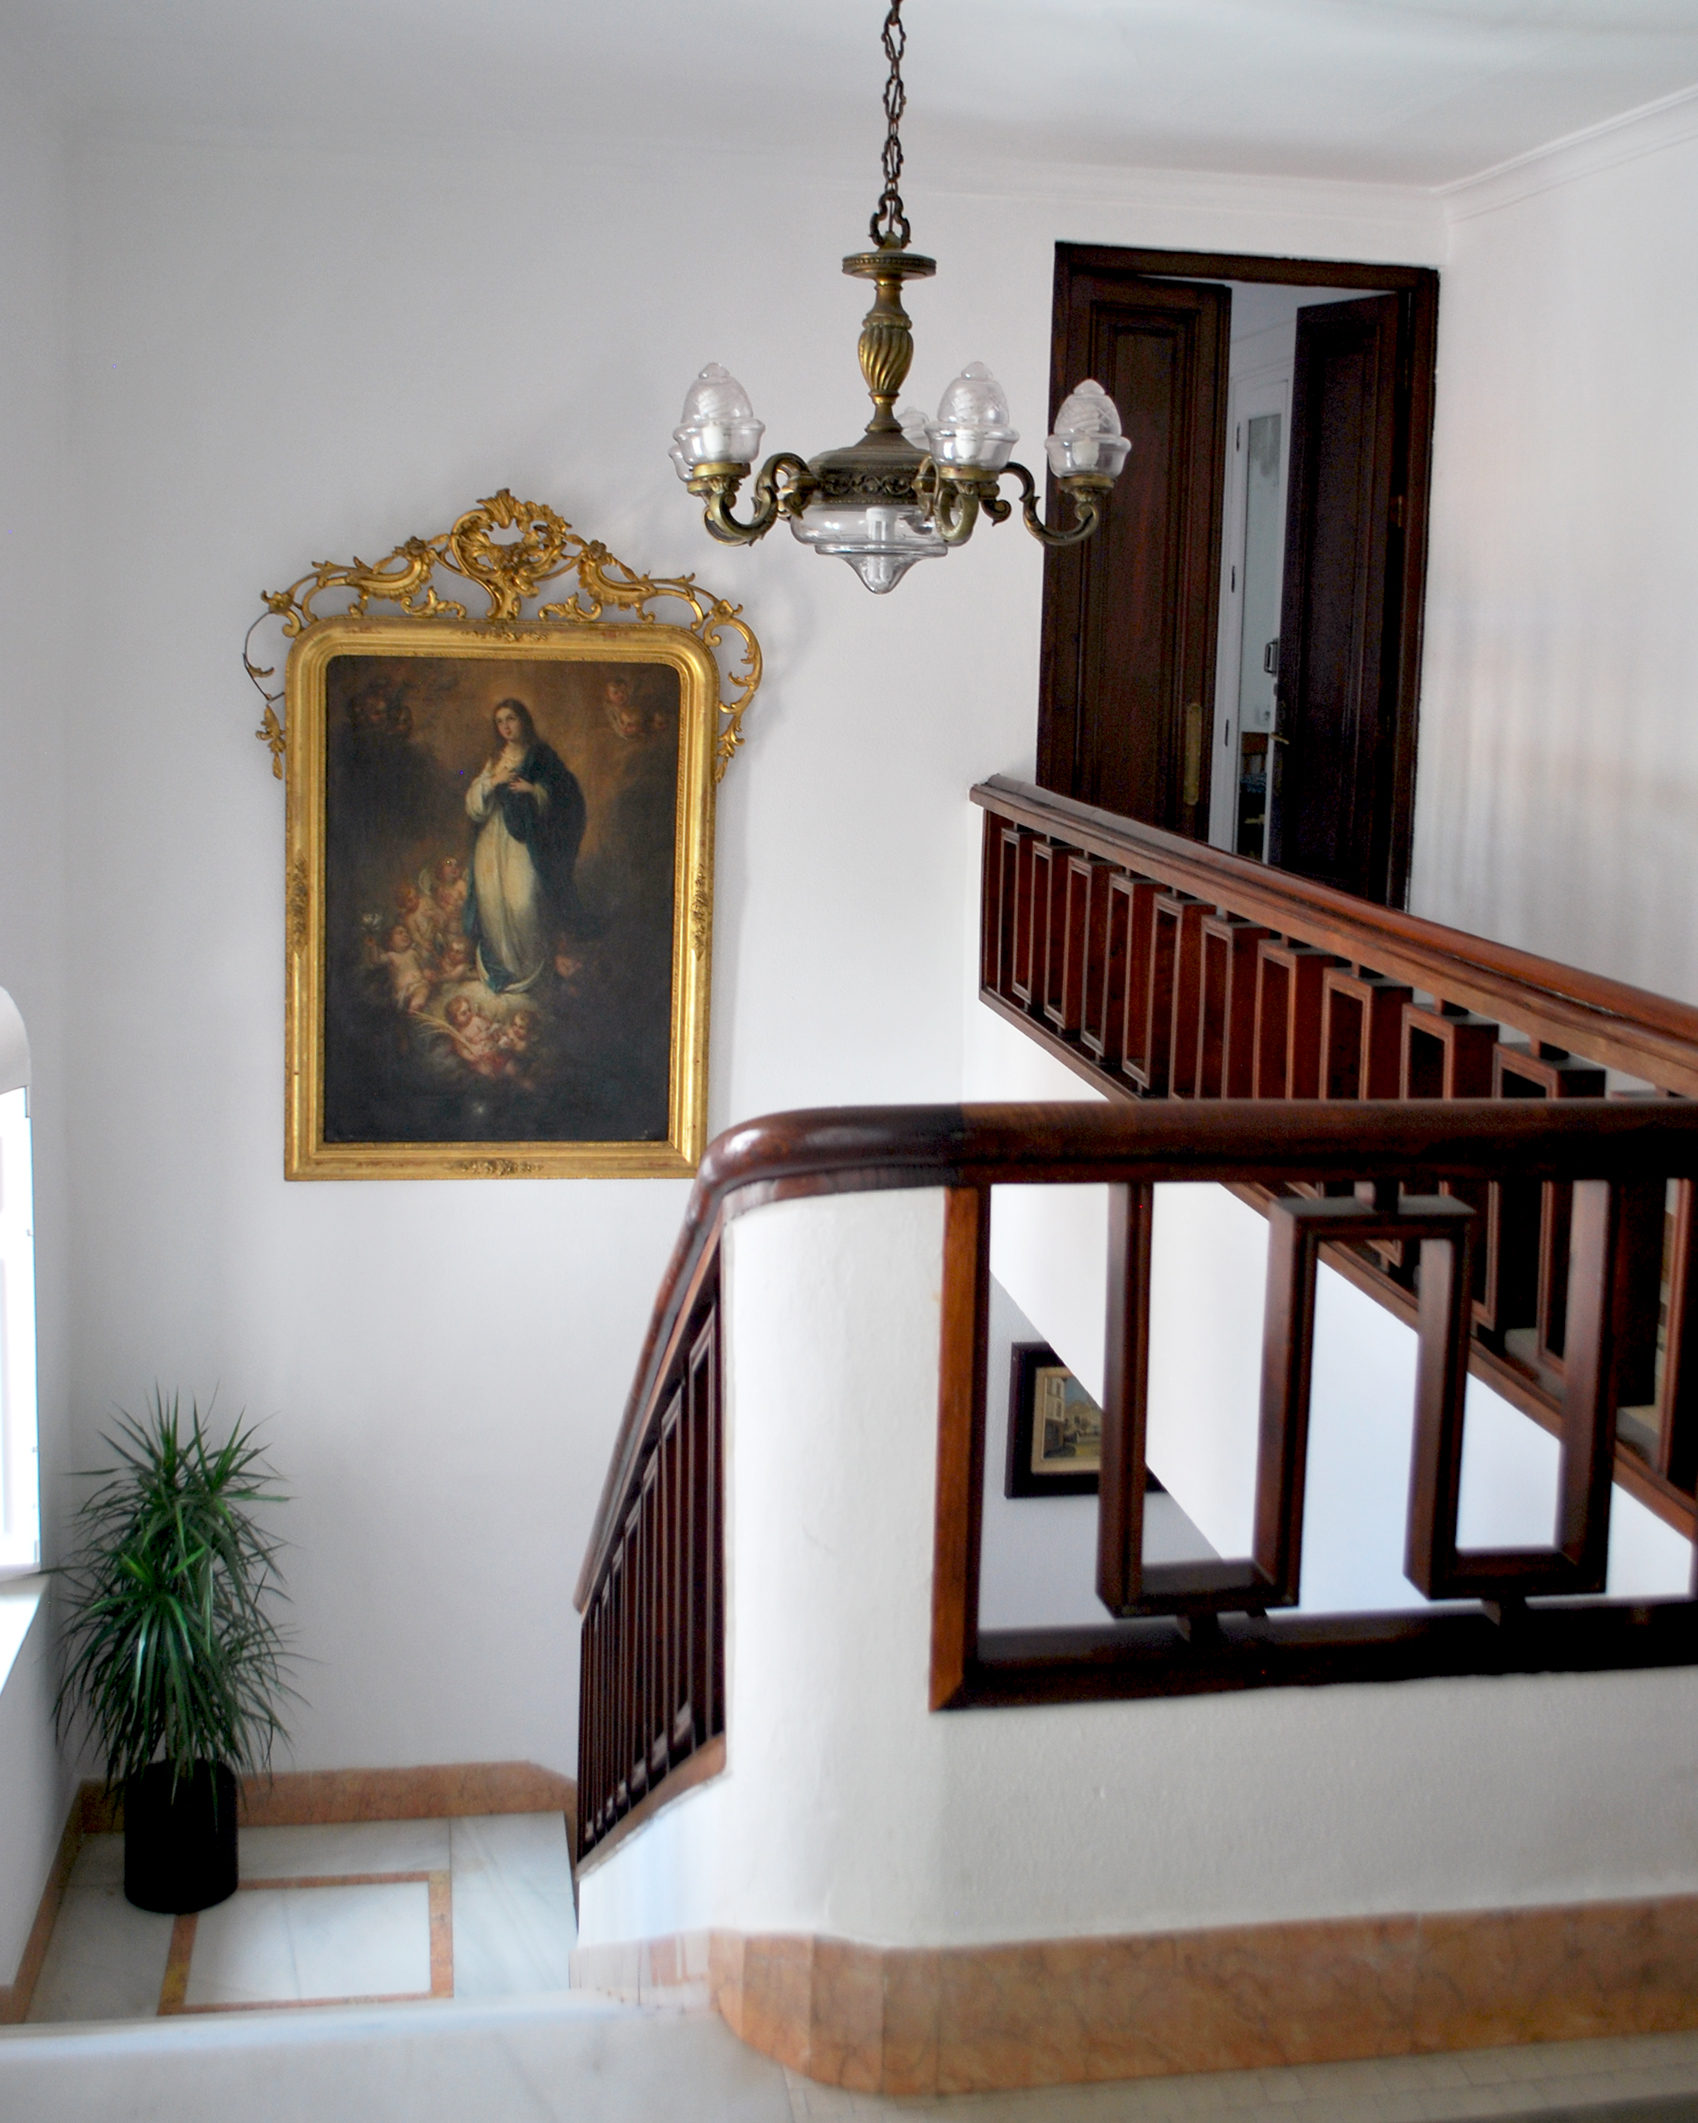 Dark wood banisters and cool marble stairs alongside traditional art and lighting.